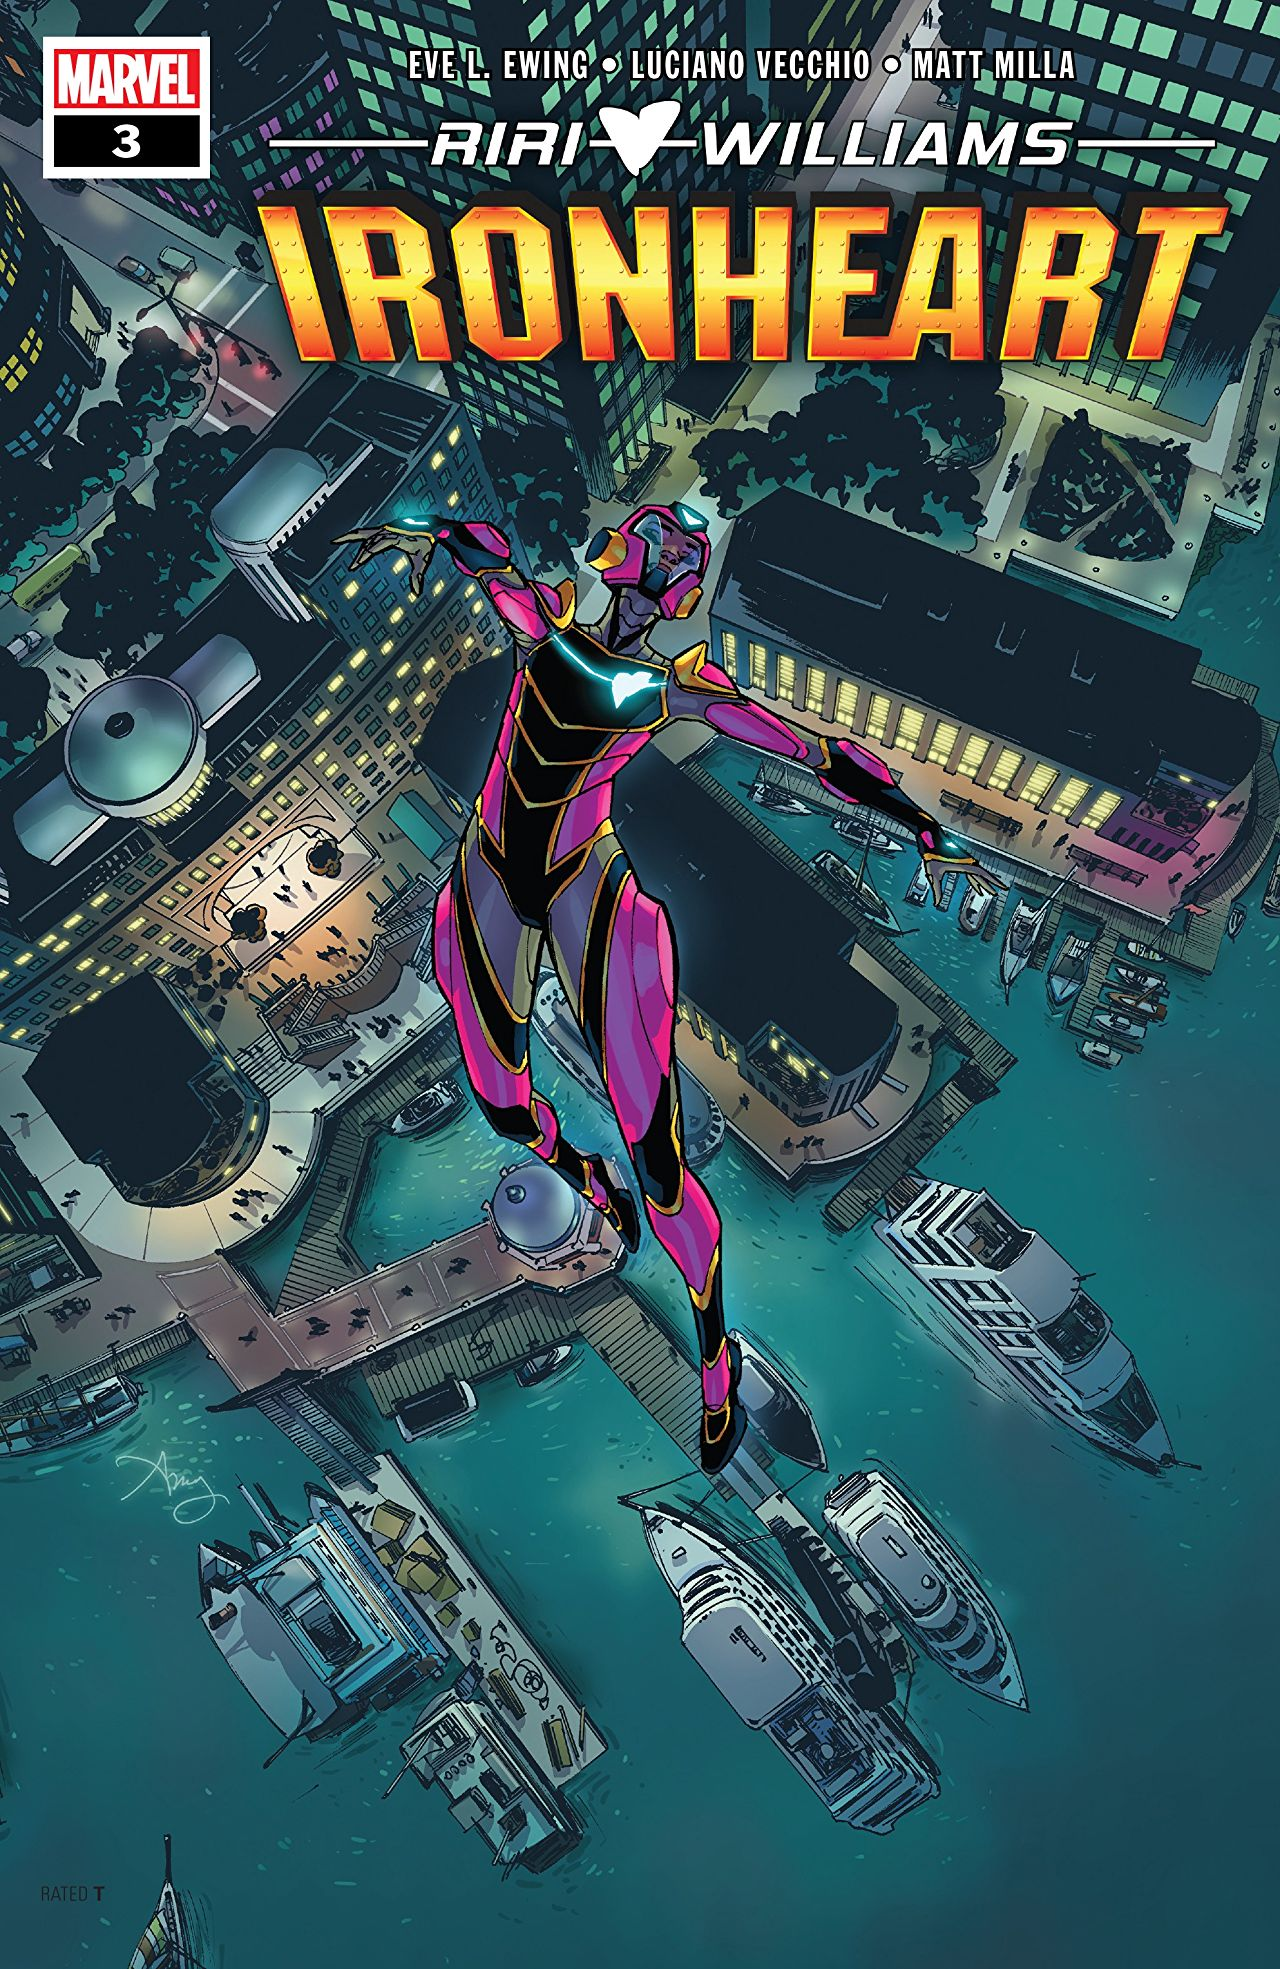 Ironheart #3. Cover by Amy Reeder.